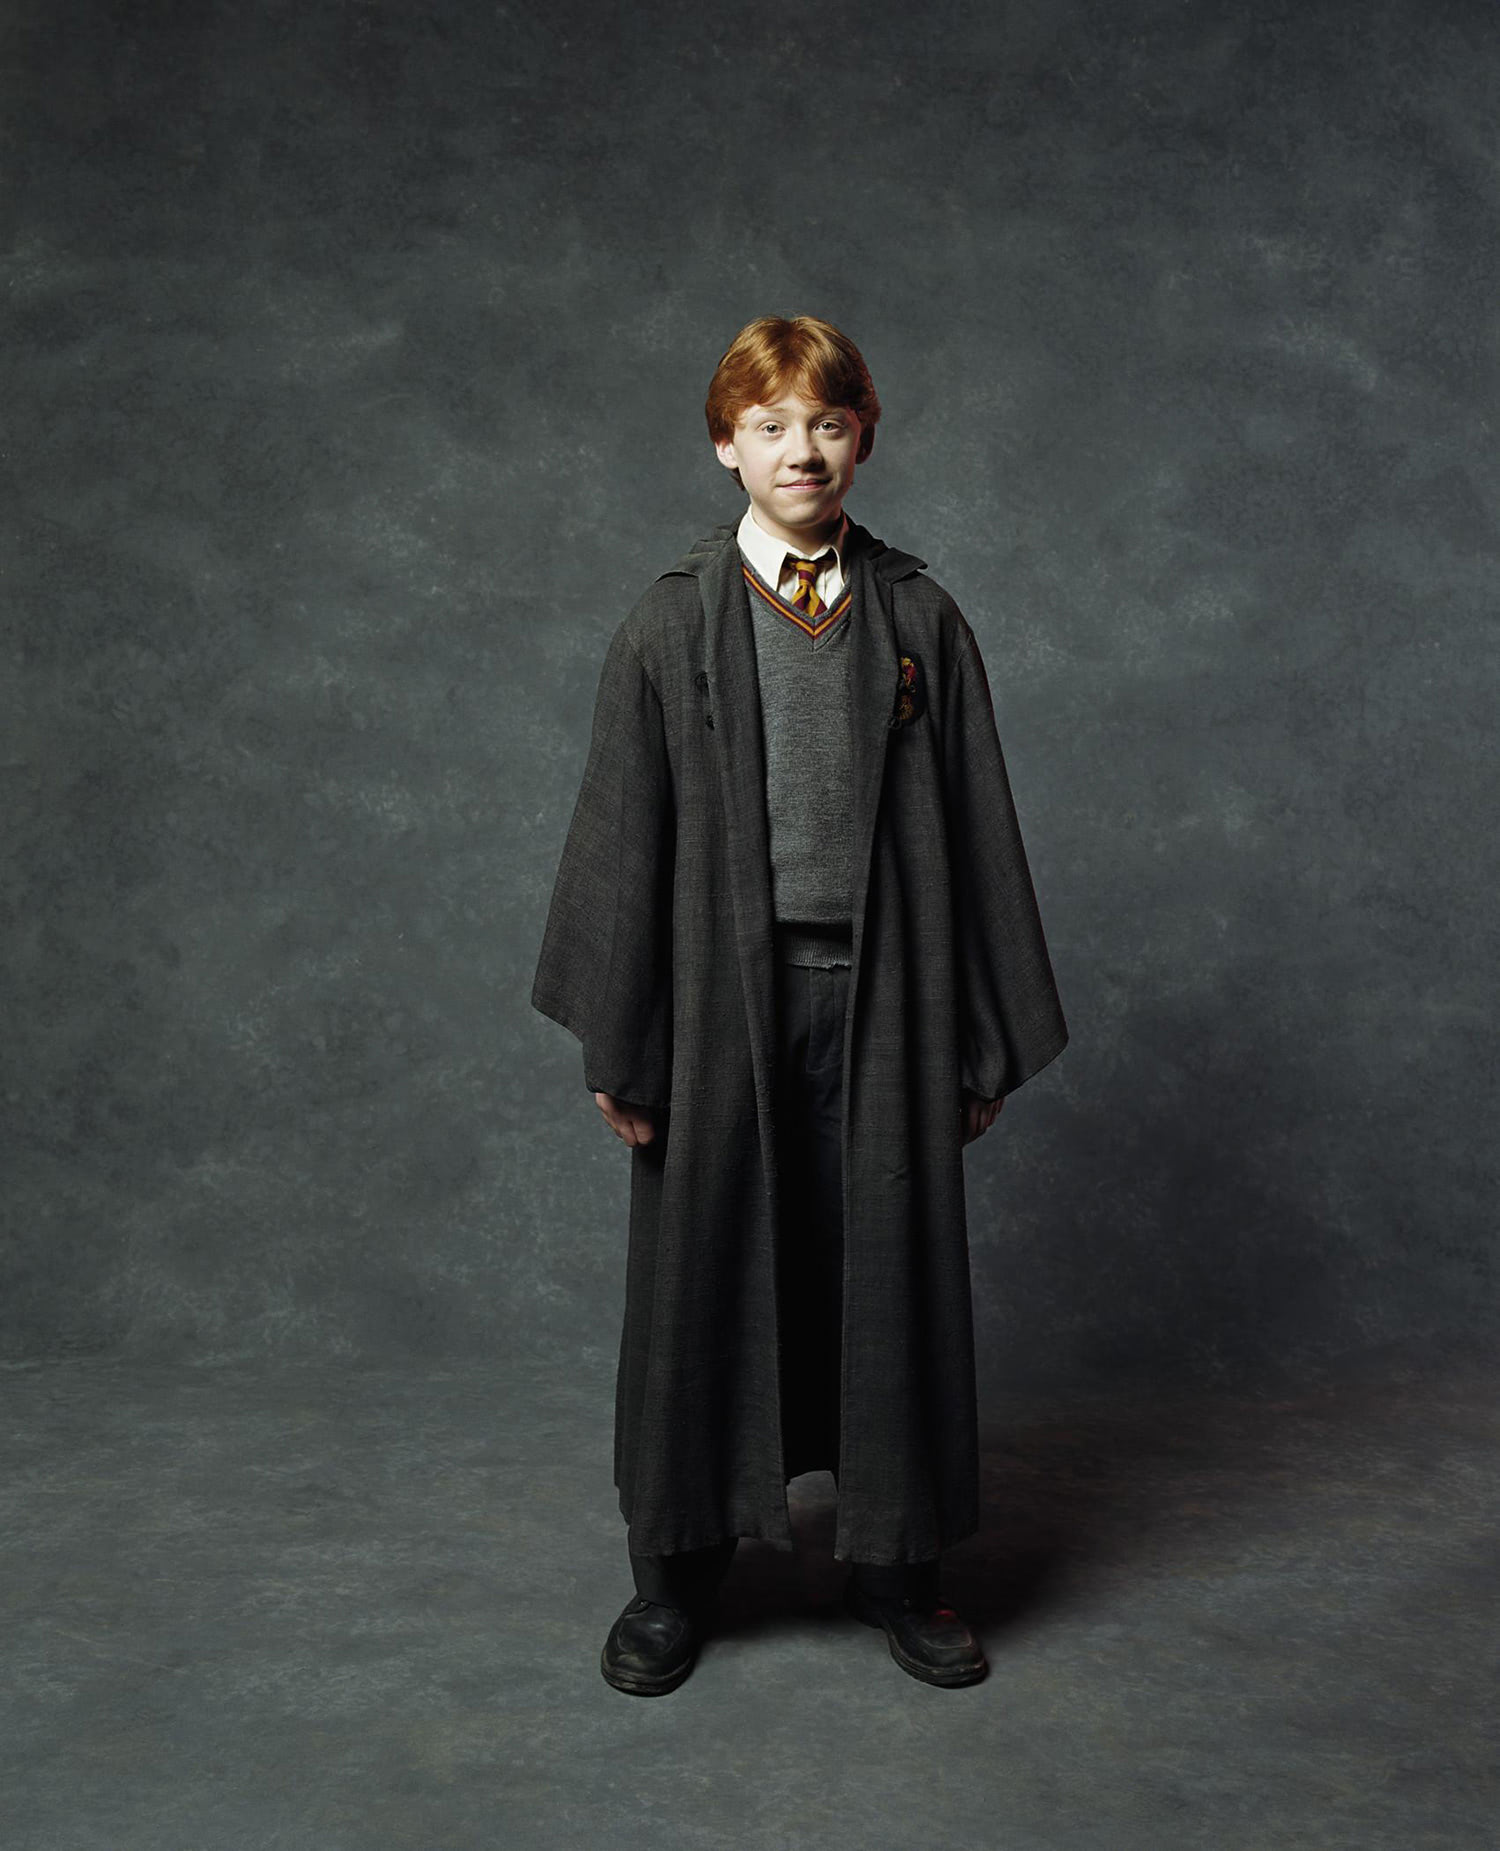 Portrait of Ron Weasley